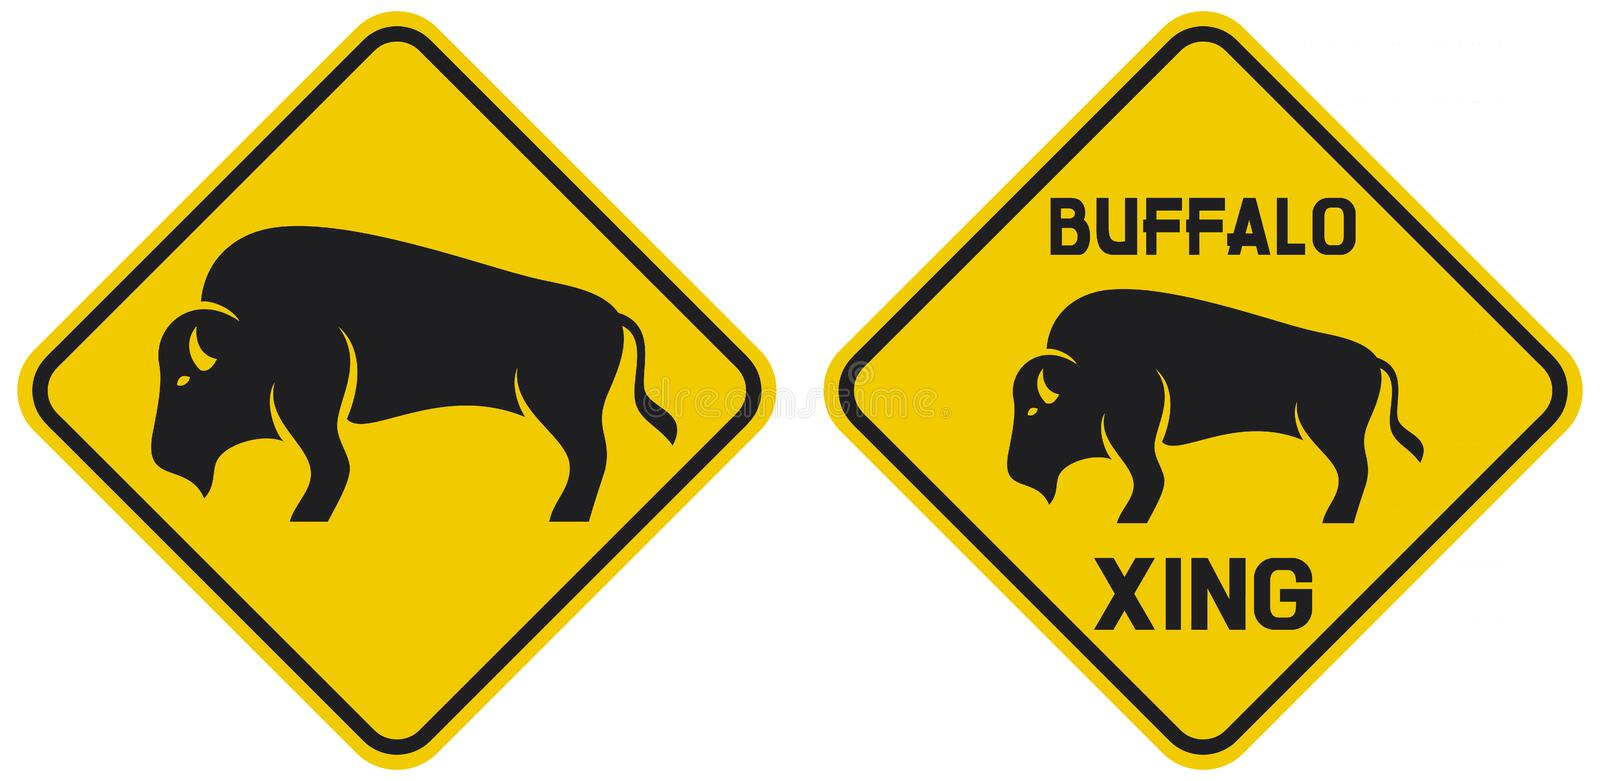 Download Buffalo stock vector. Illustration of indication, highway - 24611485